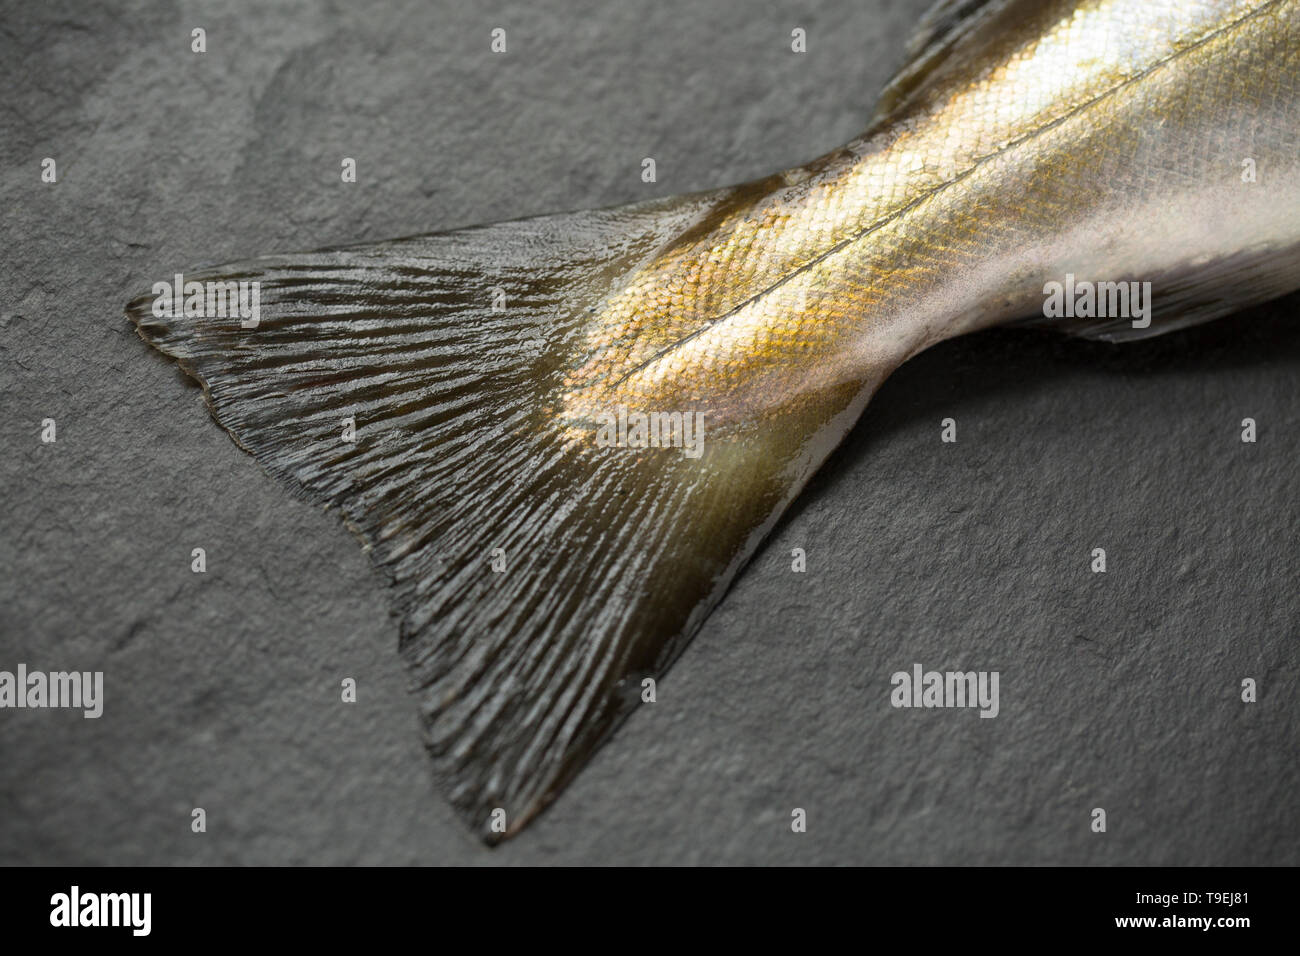 The tail fin, or caudal fin and scale pattern, of a raw, uncooked Pollack, Pollachius pollachius, that was caught on rod and line boat fishing in th E - Stock Image